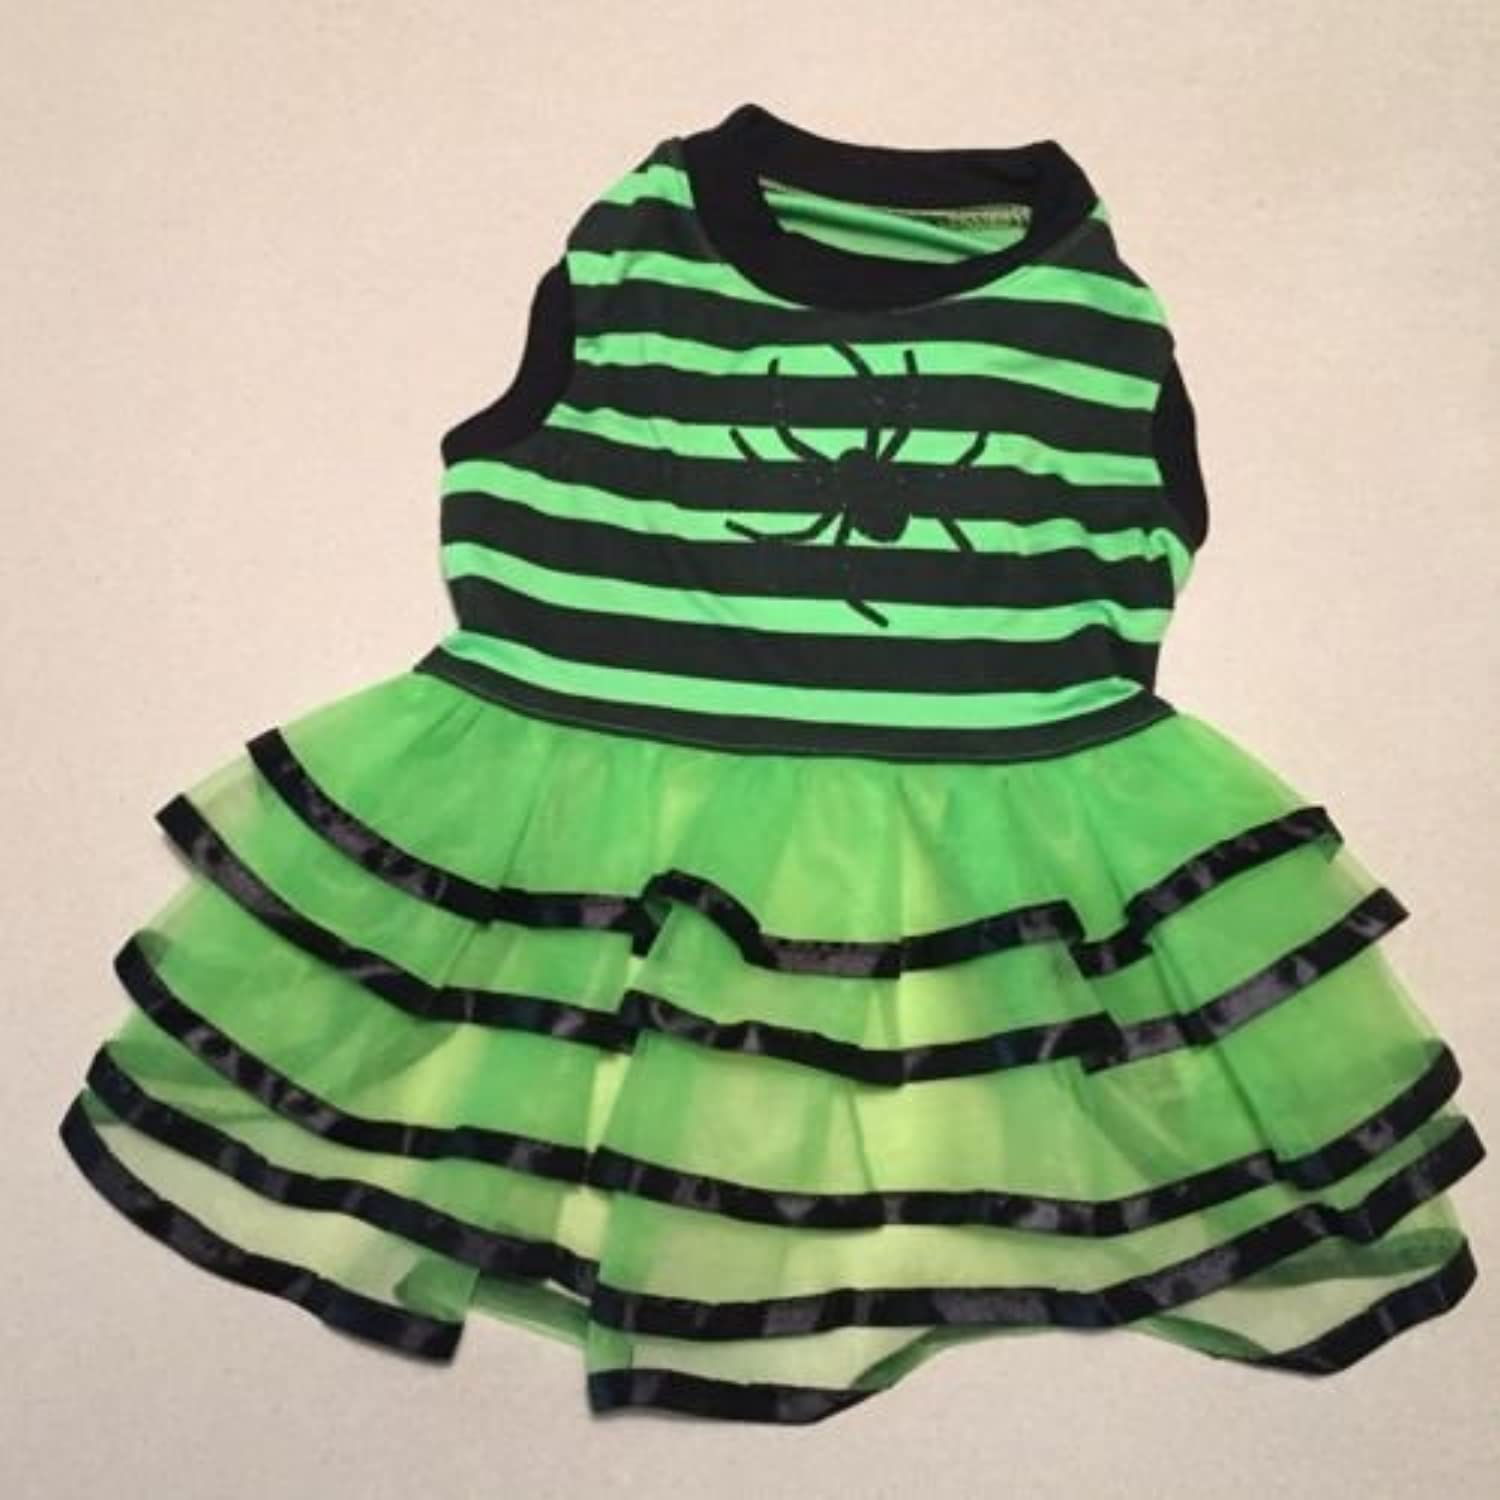 Top Paw Dog Halloween Costume Green Dress Size Small